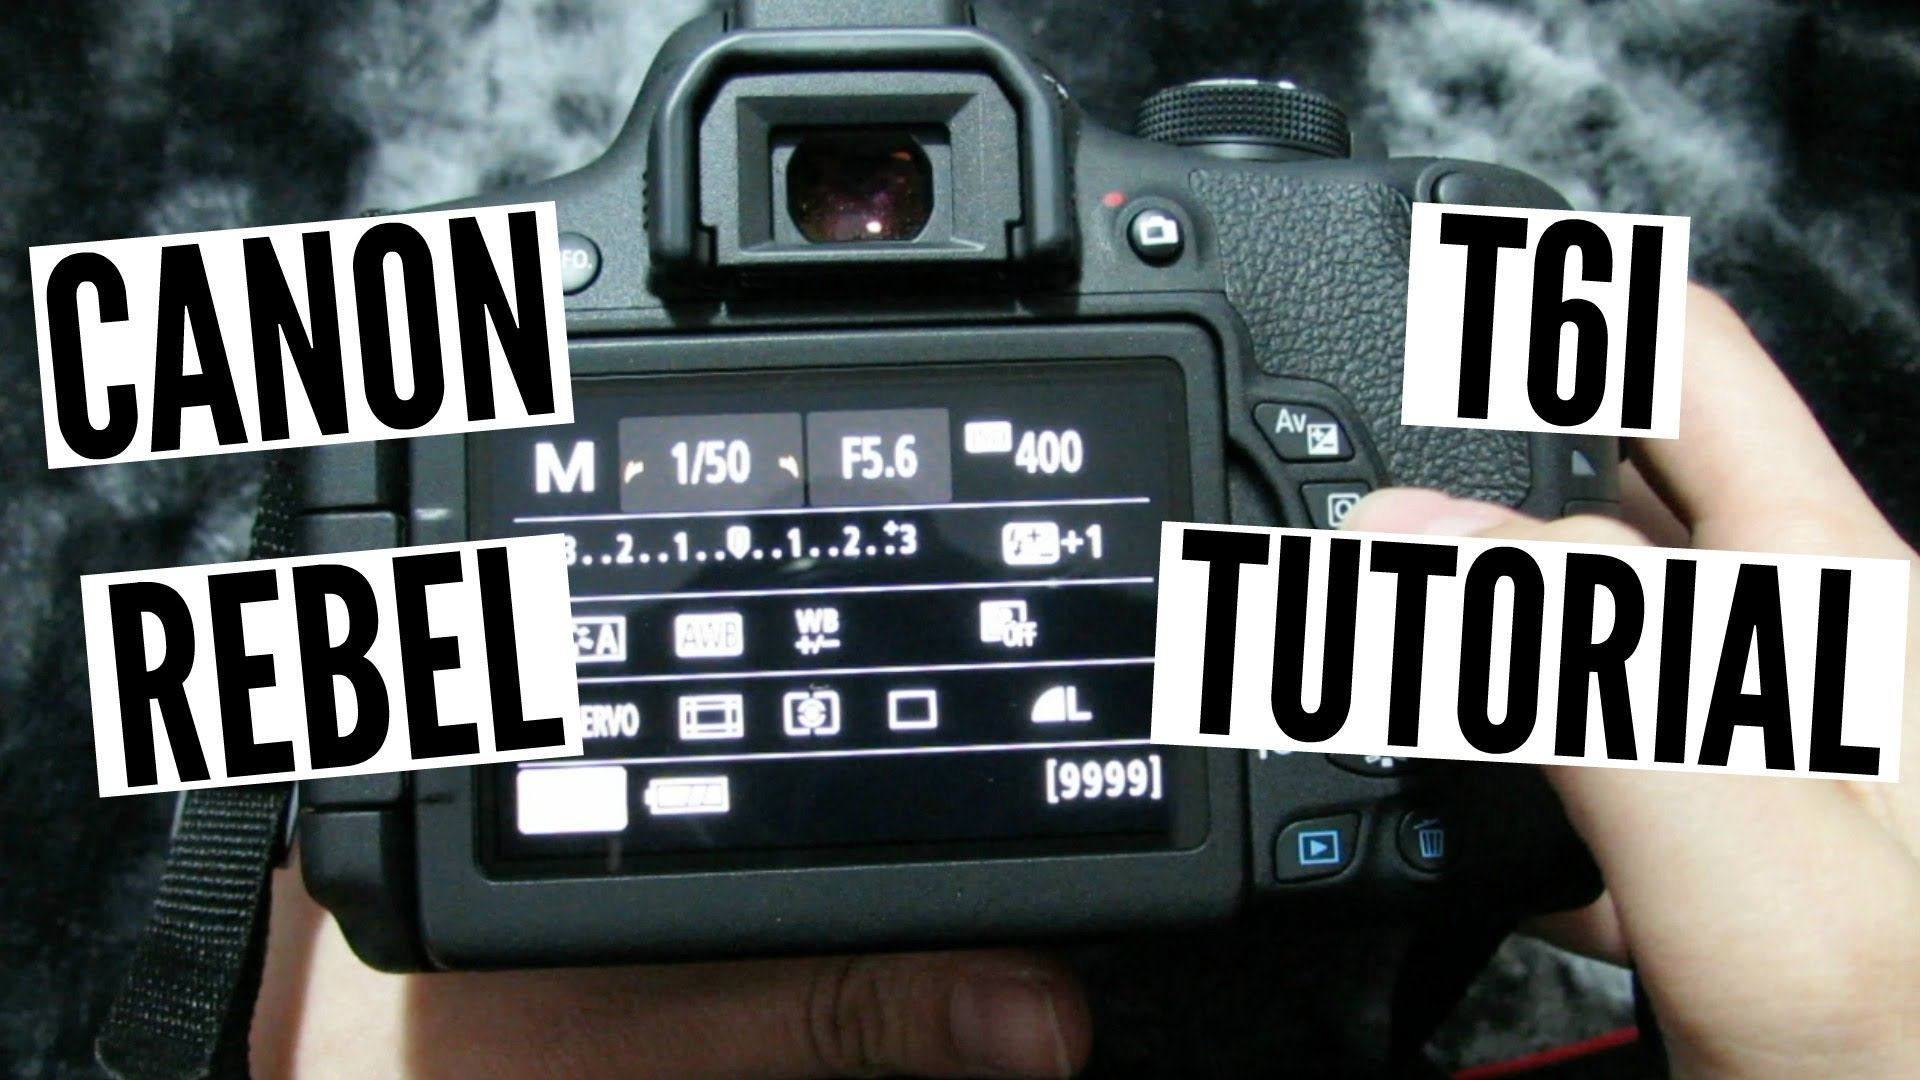 Printing Digital Photography | Retouching tutorial | Canon